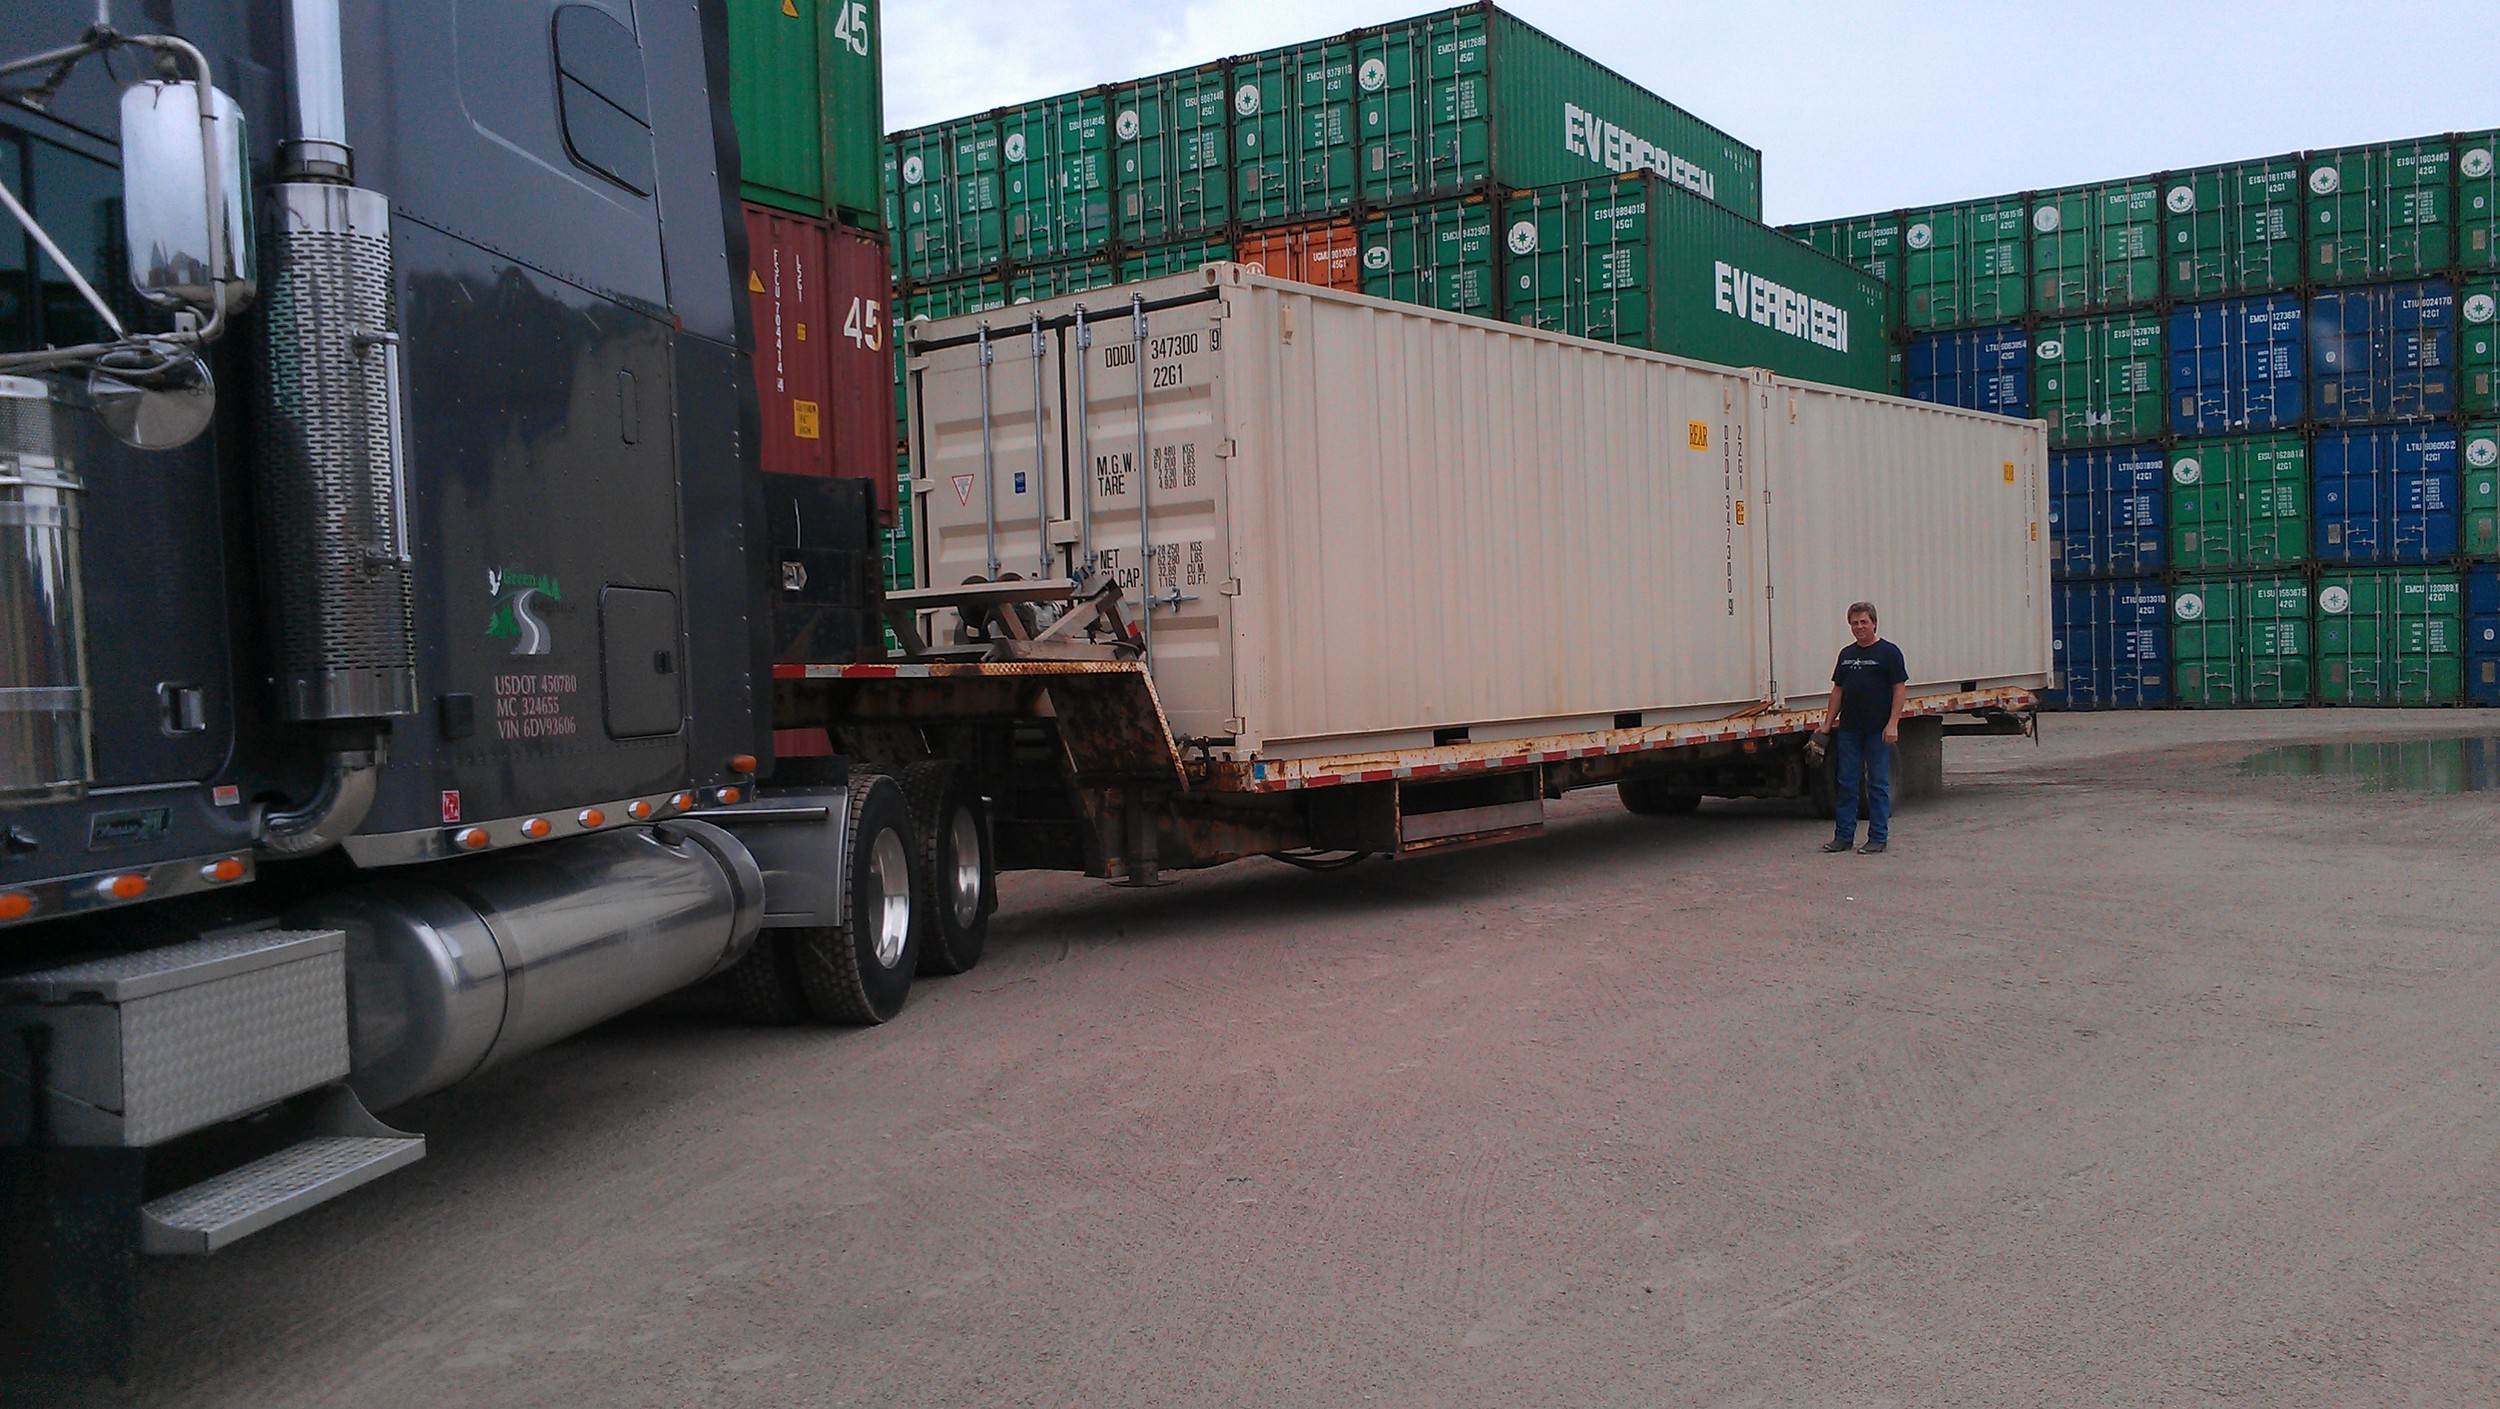 Two 20' containers ready for tiltbed delivery